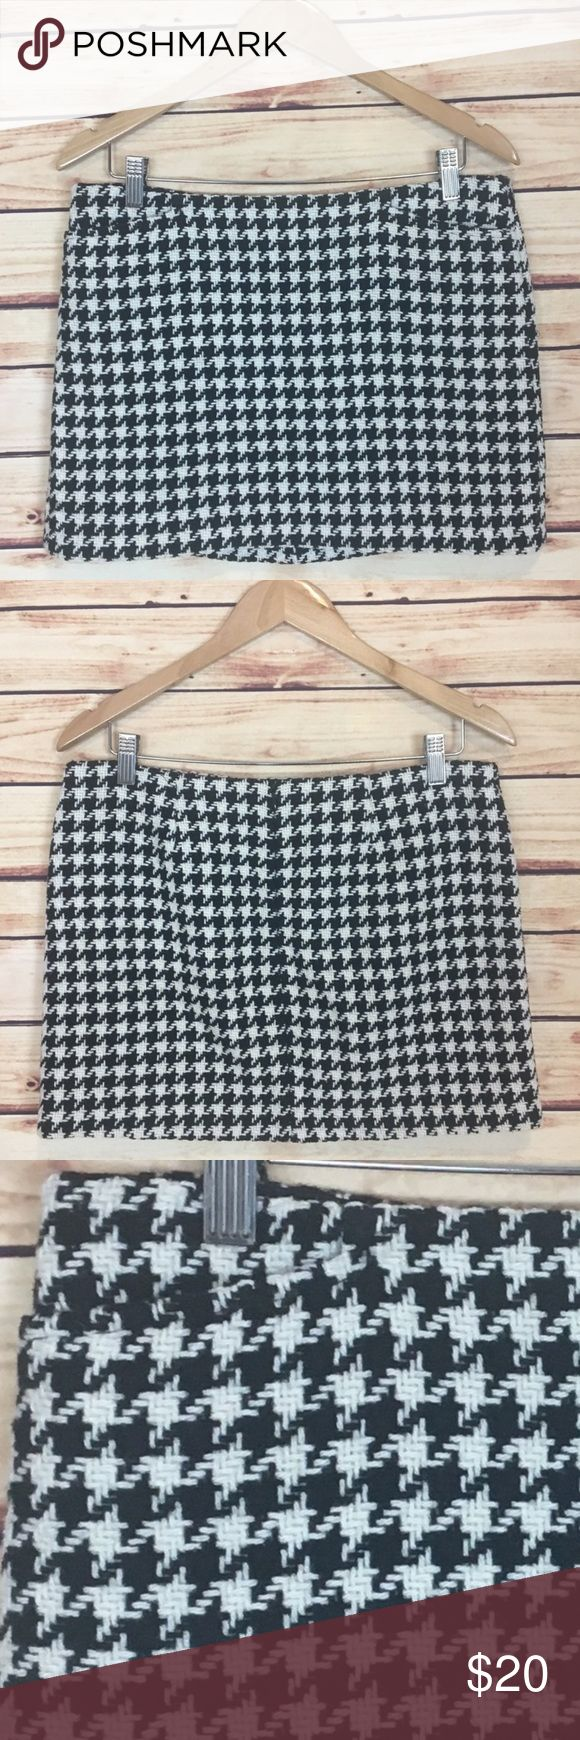 """GAP Black and White Houndstooth Wool Mini Skirt 8 GAP houndstooth mini skirt. Black and white. Pockets at waist. Mod look. Size 8.  Excellent preowned condition with no flaws.  Measurements are approximately: 33"""" waist, 38"""" hips, and 13.75"""" length.  Shell: 65% recycled wool, 29% nylon, 6% other fibers. Lining: 100% acetate.  No trades. All items come from a pet friendly, smoke free home. Bundle to save! GAP Skirts Mini"""